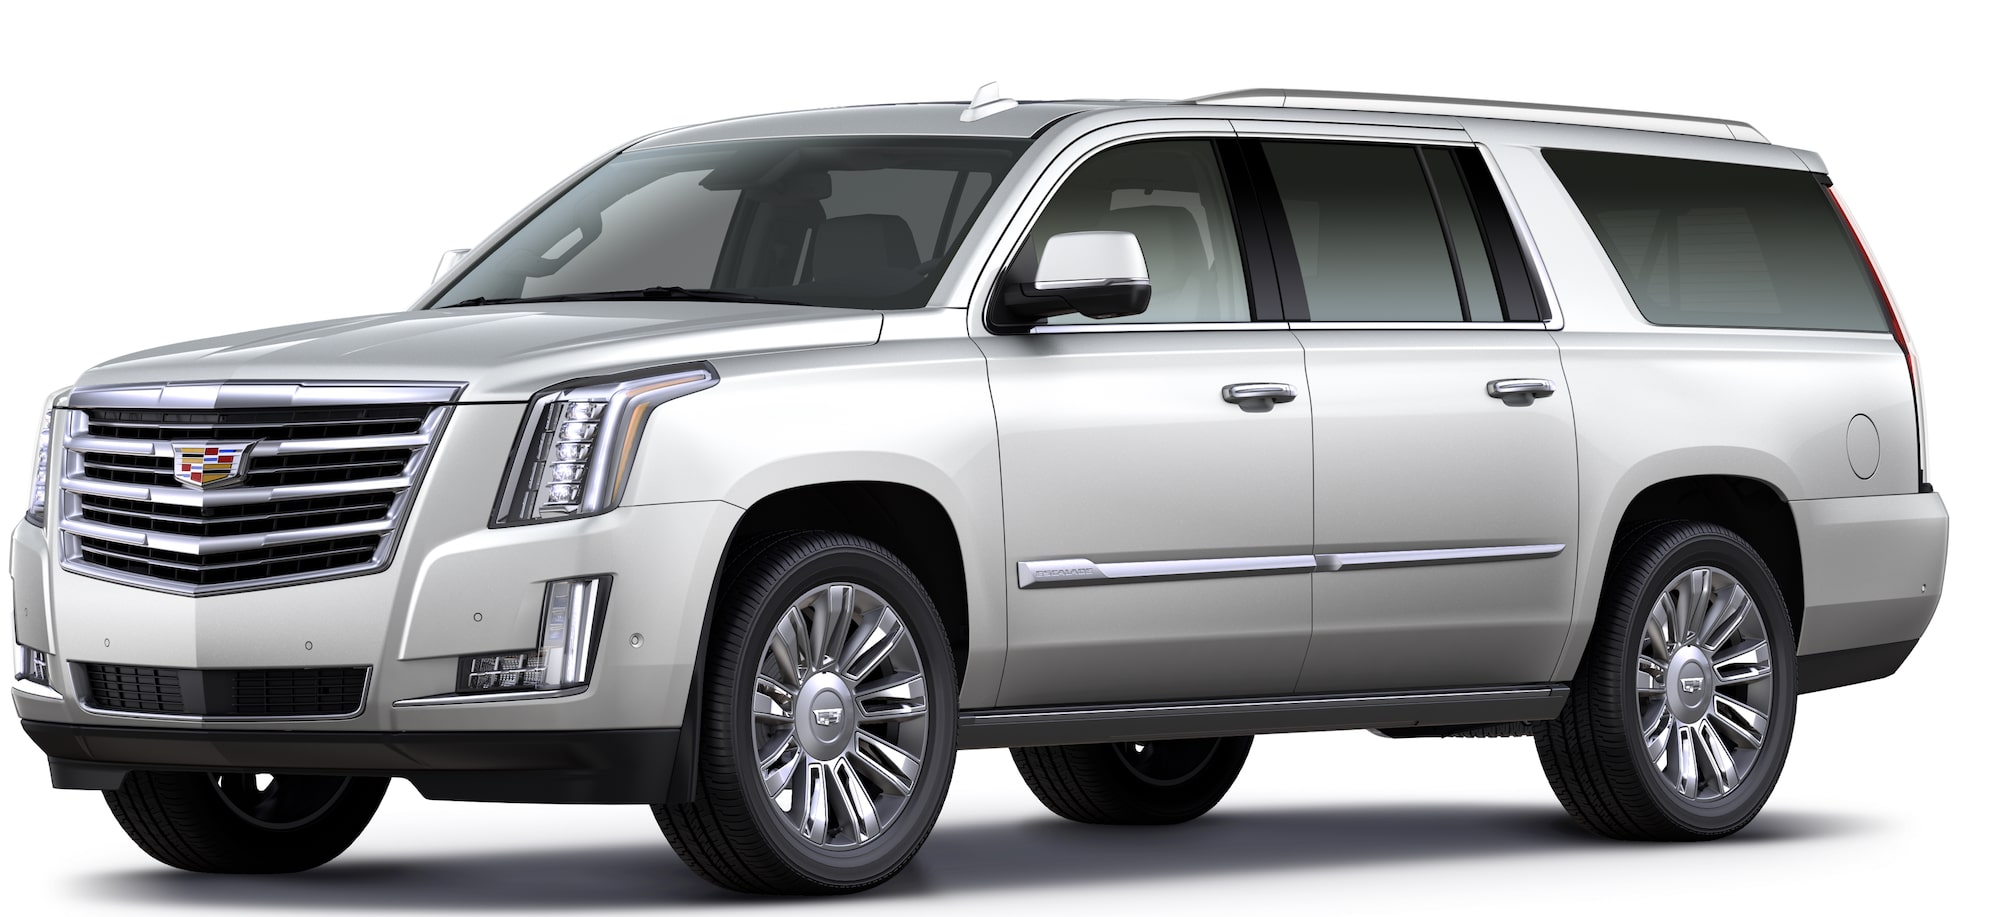 build your own vehicle configurator cadillac. Black Bedroom Furniture Sets. Home Design Ideas